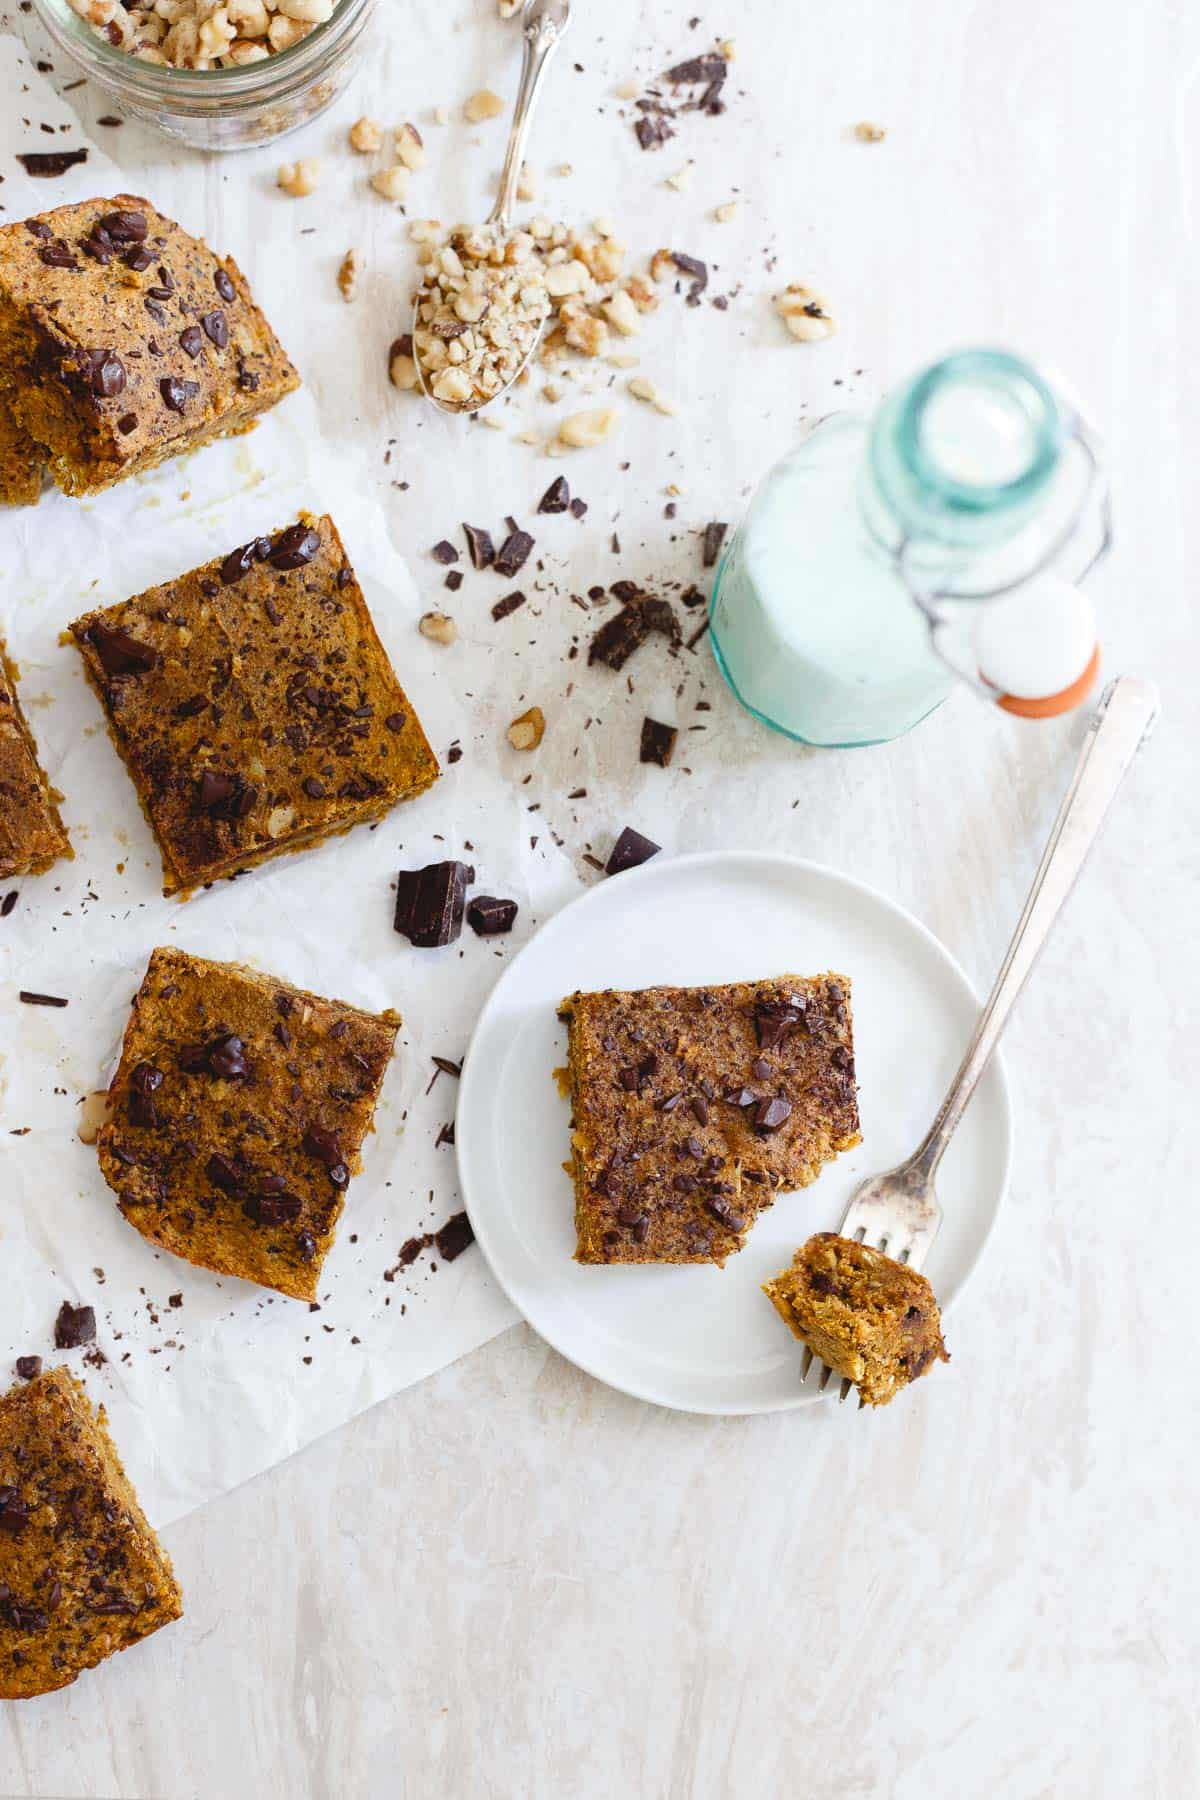 Chewy, walnut packed pumpkin chocolate chip bars are a great snack or healthy dessert.